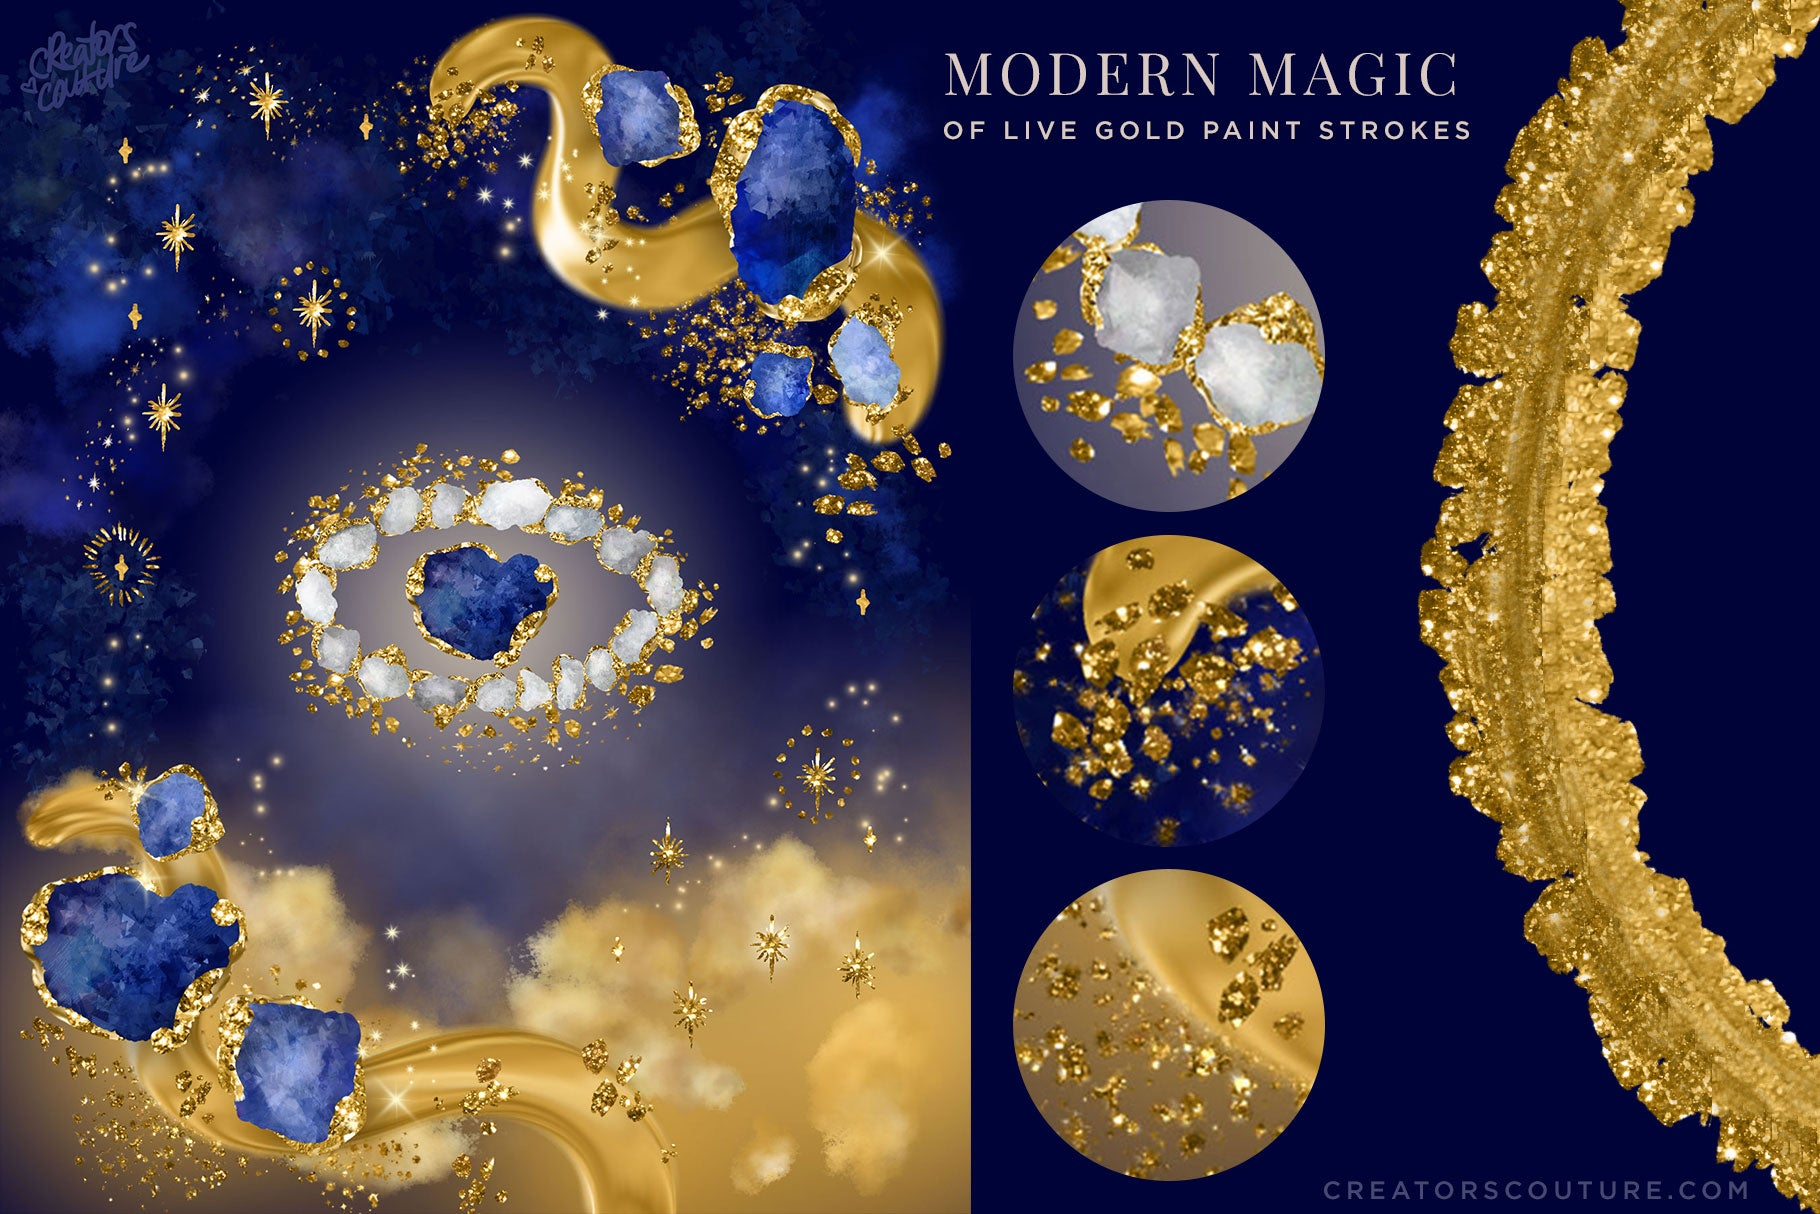 mystical gold paint stroke artwork made with 24k gold photoshop brushes 2